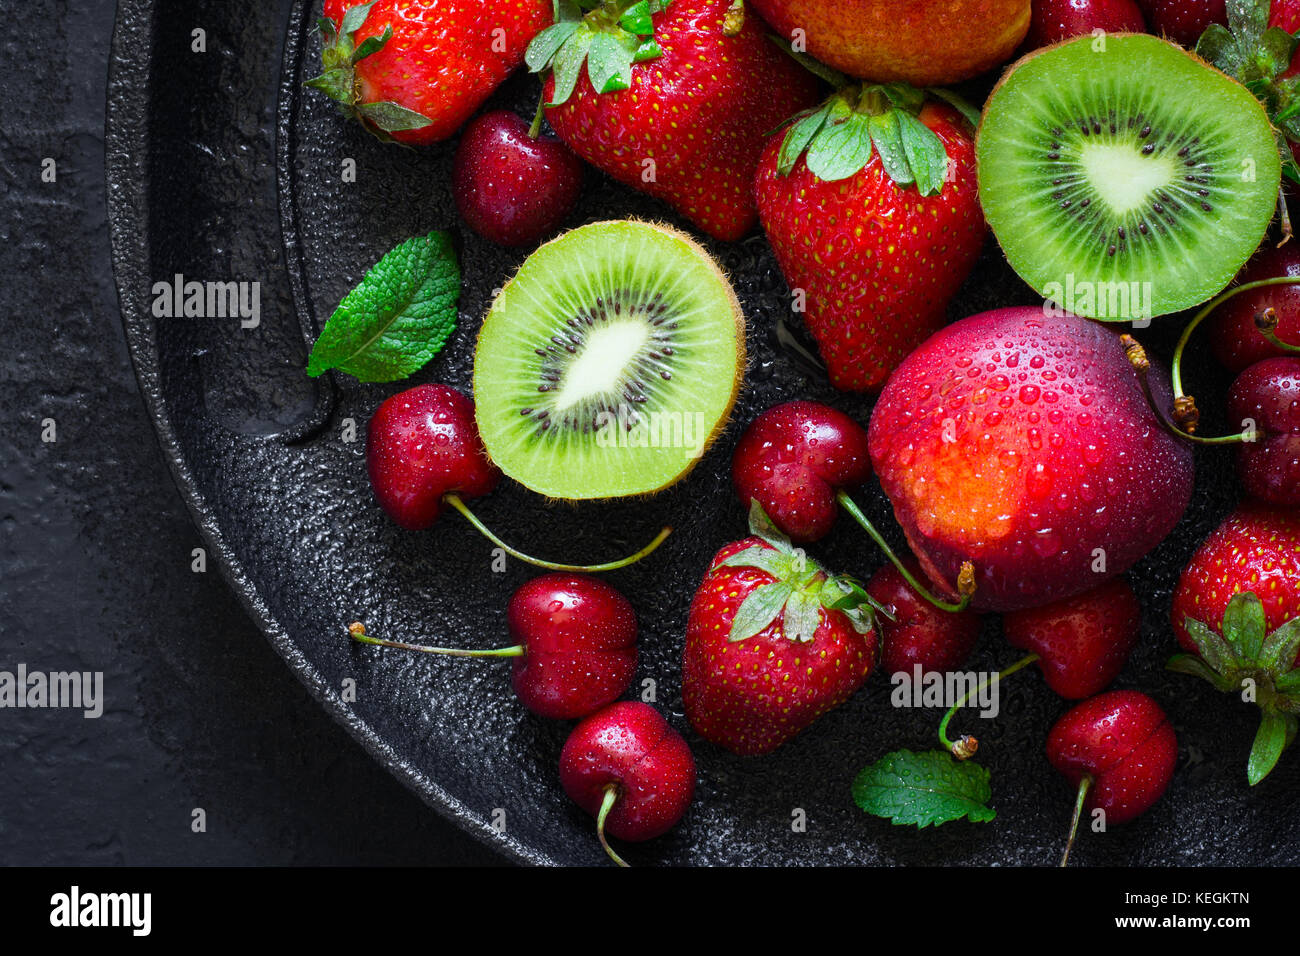 Summer juicy ripe Strawberry, cherry, kiwi and peaches On a black plate closeup. - Stock Image